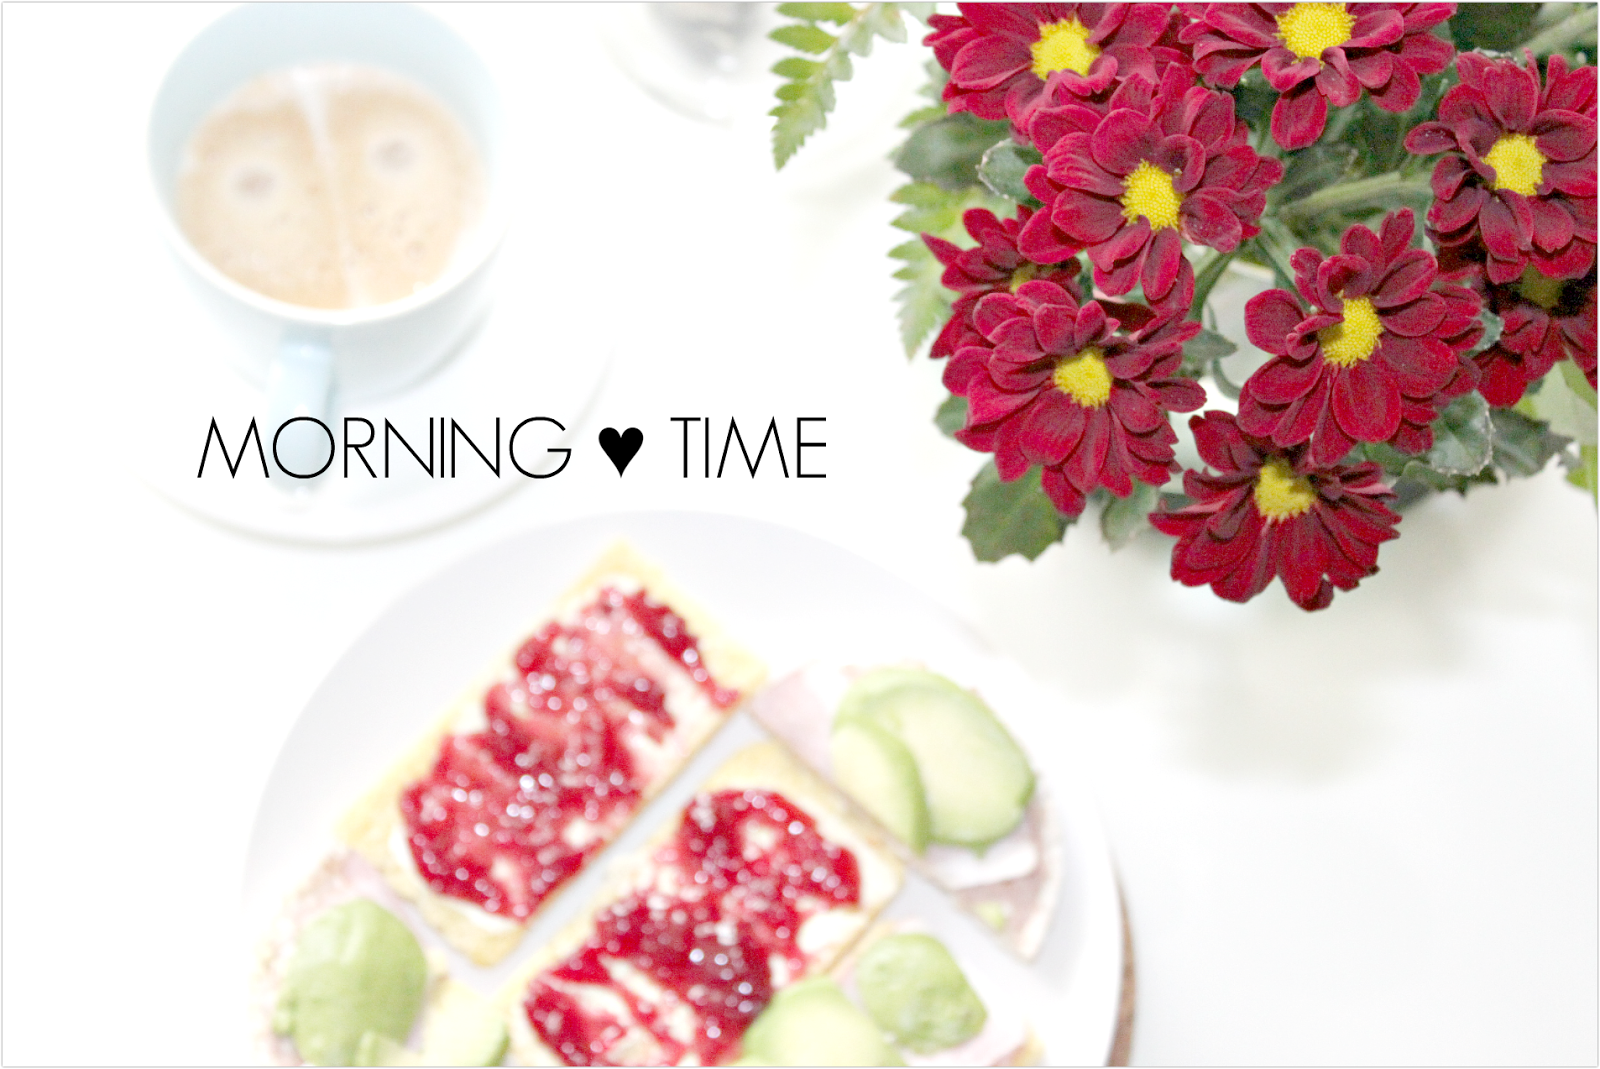 MORNING ♥ TIME